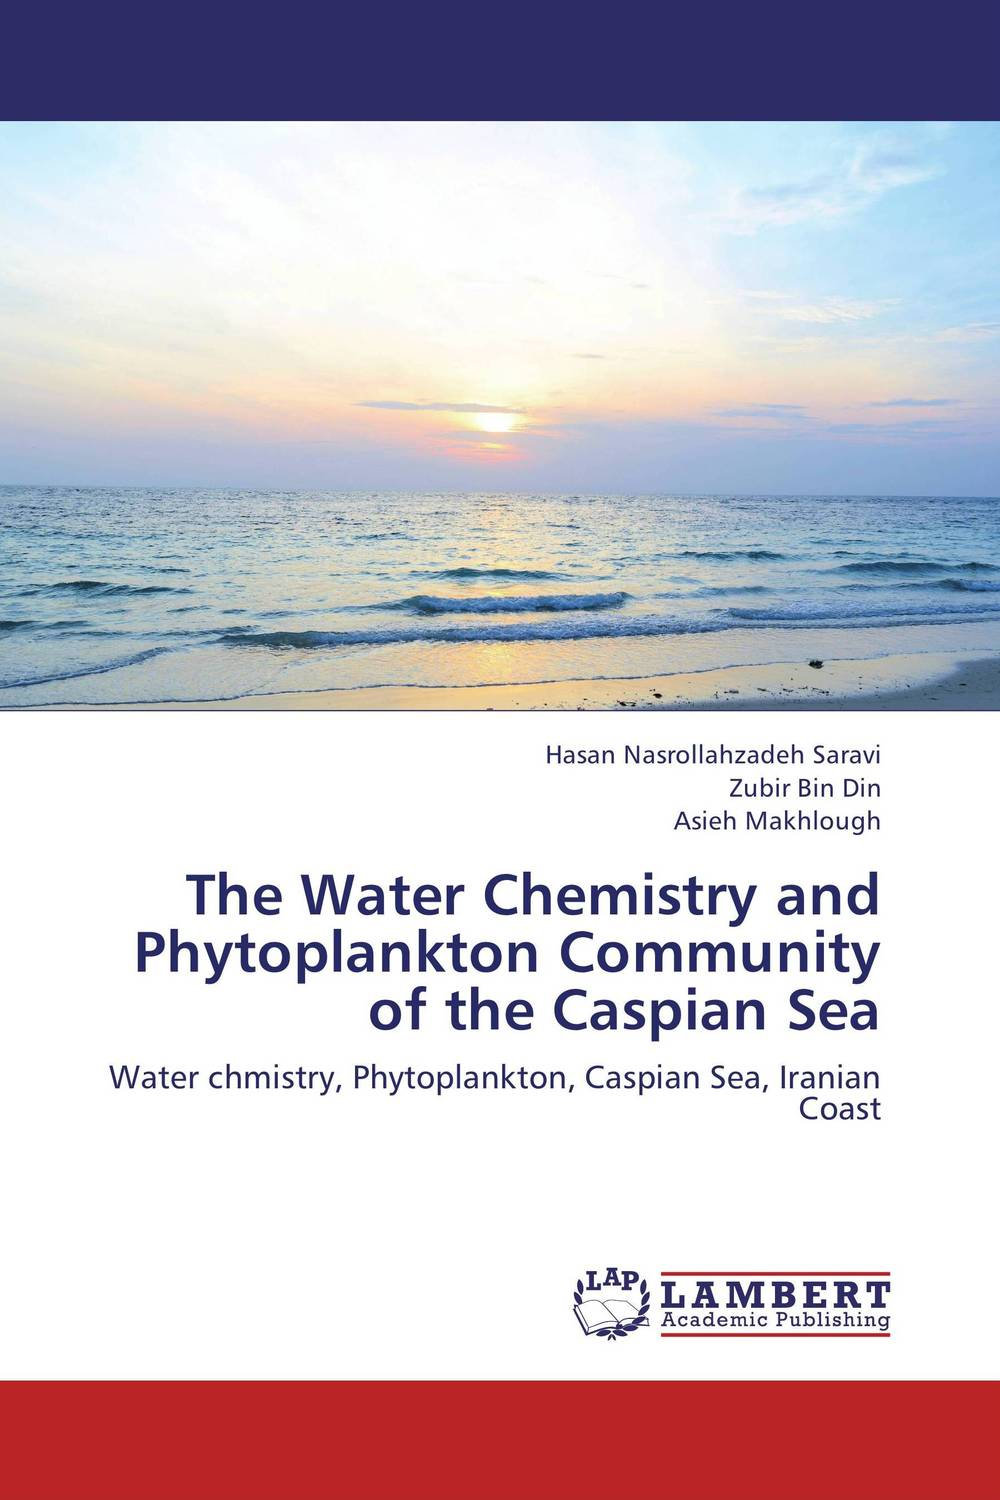 The Water Chemistry...